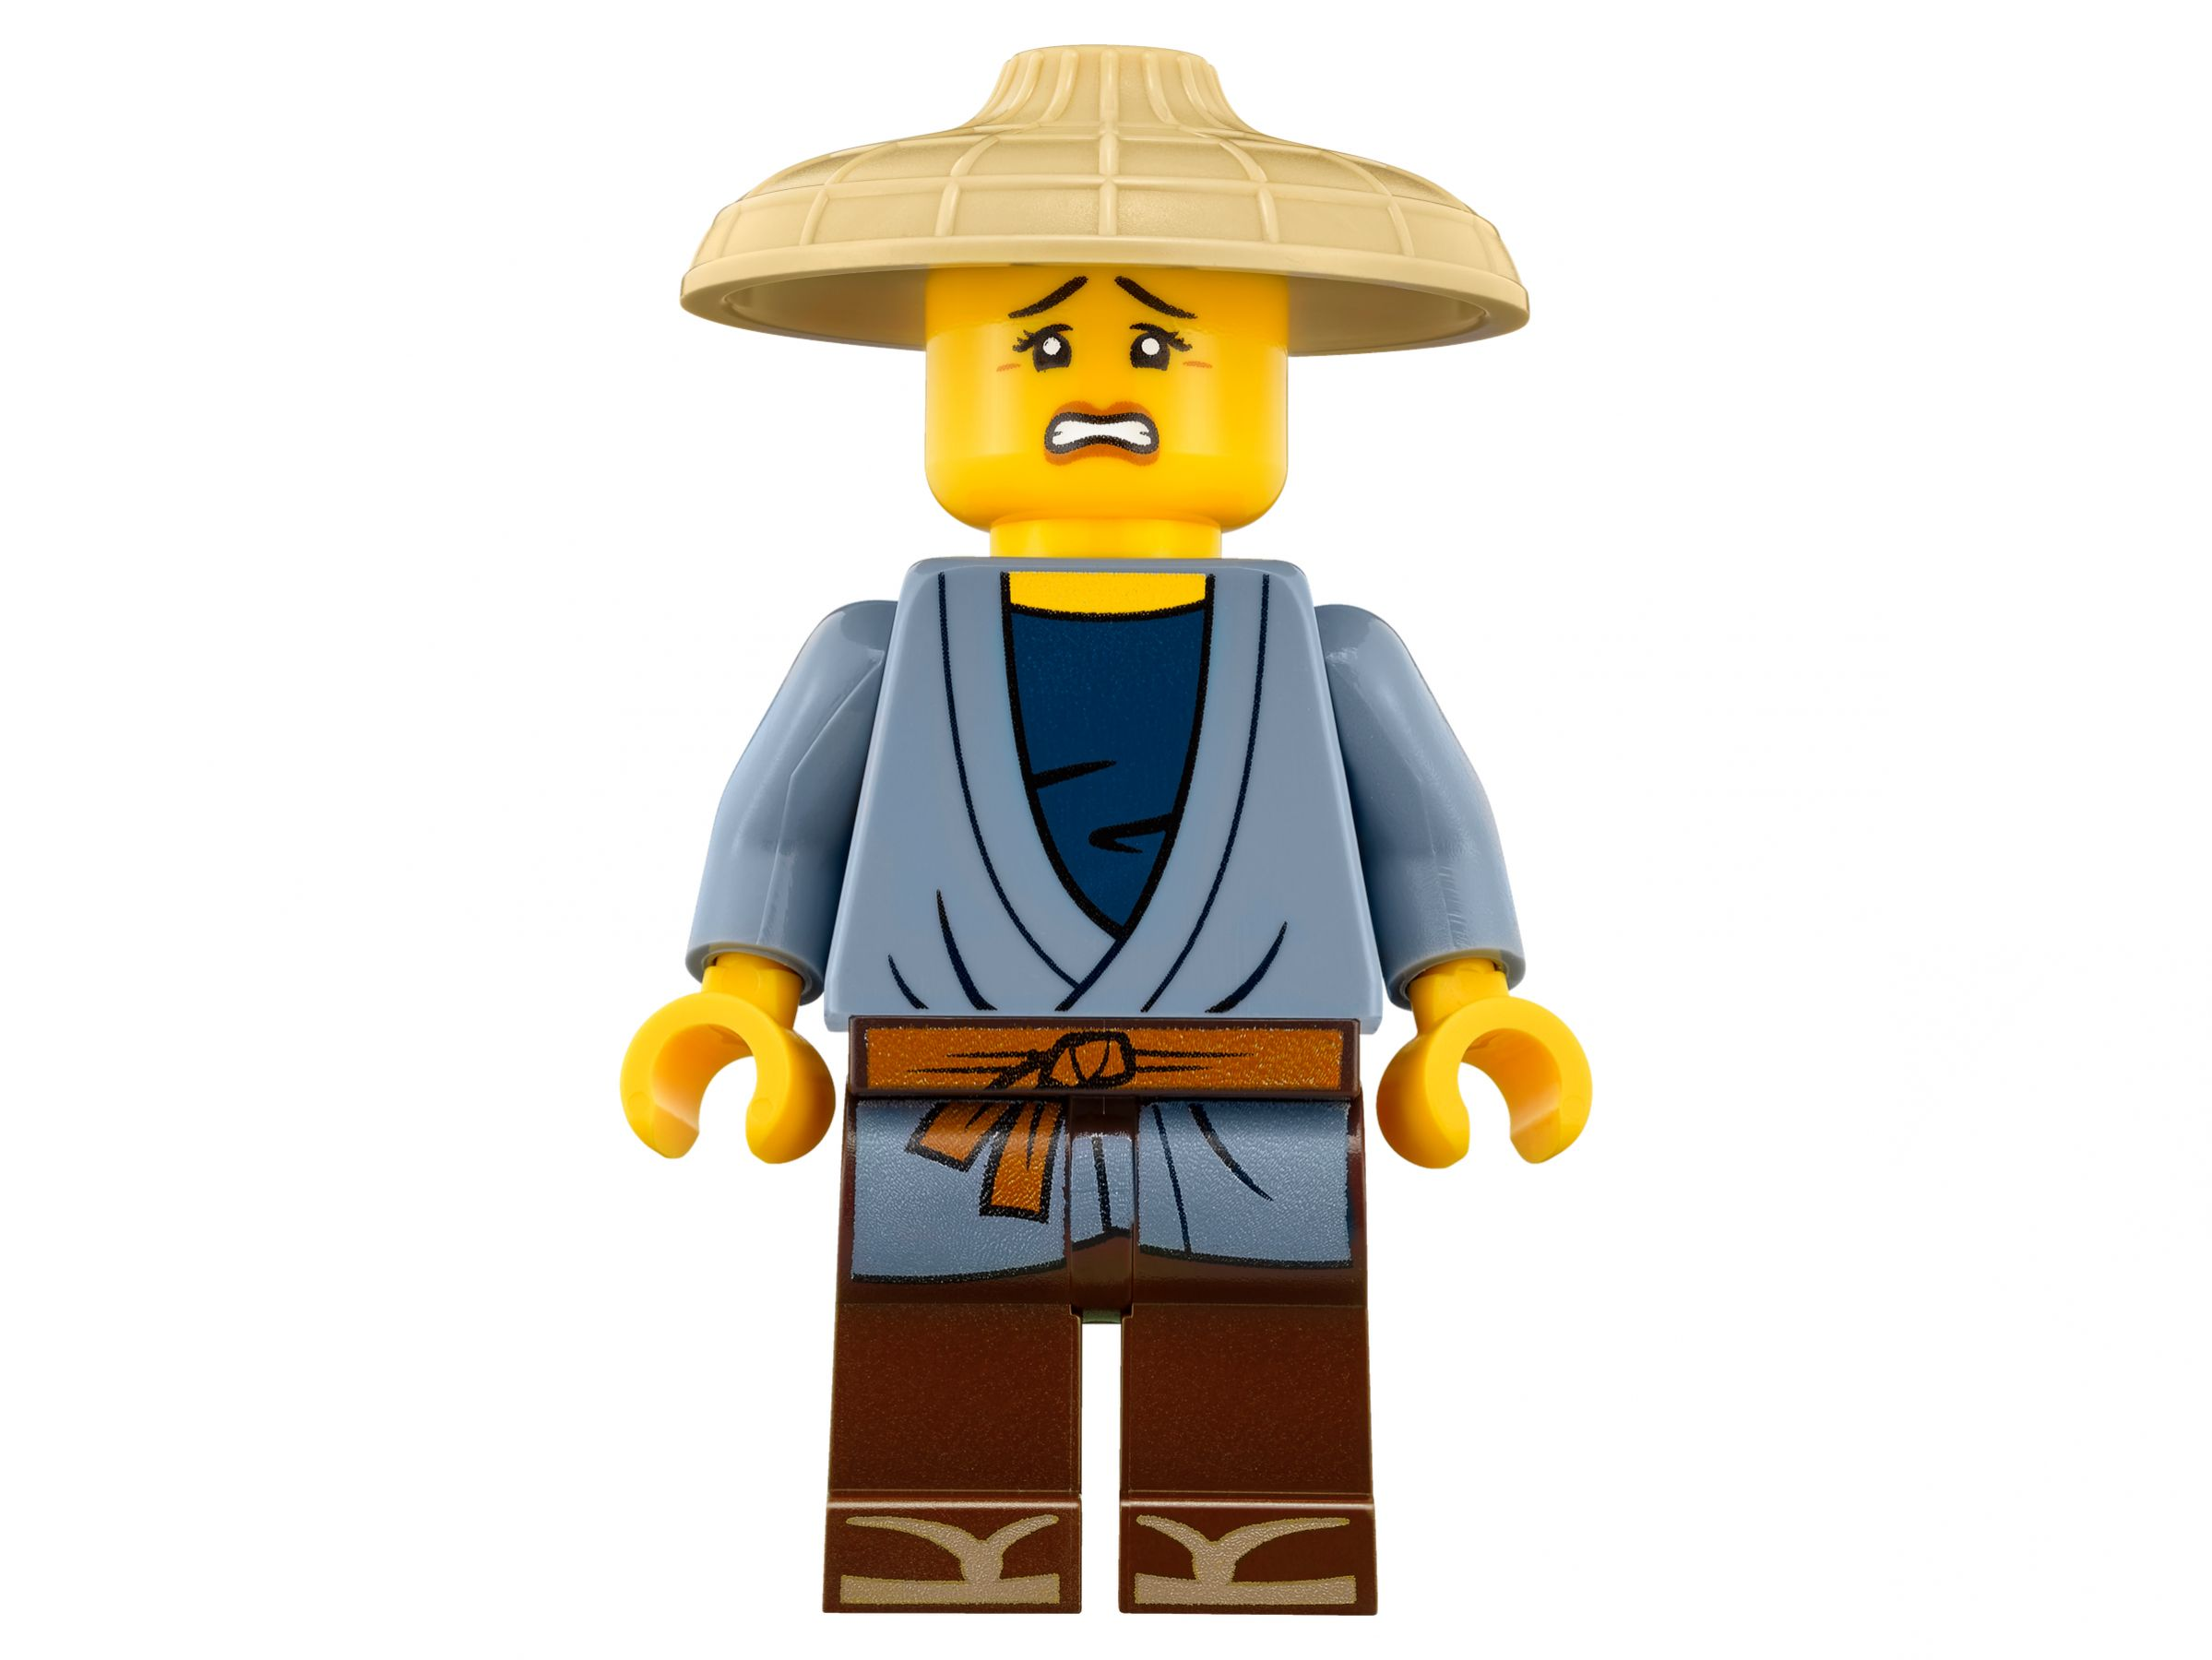 LEGO The LEGO Ninjago Movie 70613 Garmadon's Robo-Hai LEGO_70613_alt10.jpg